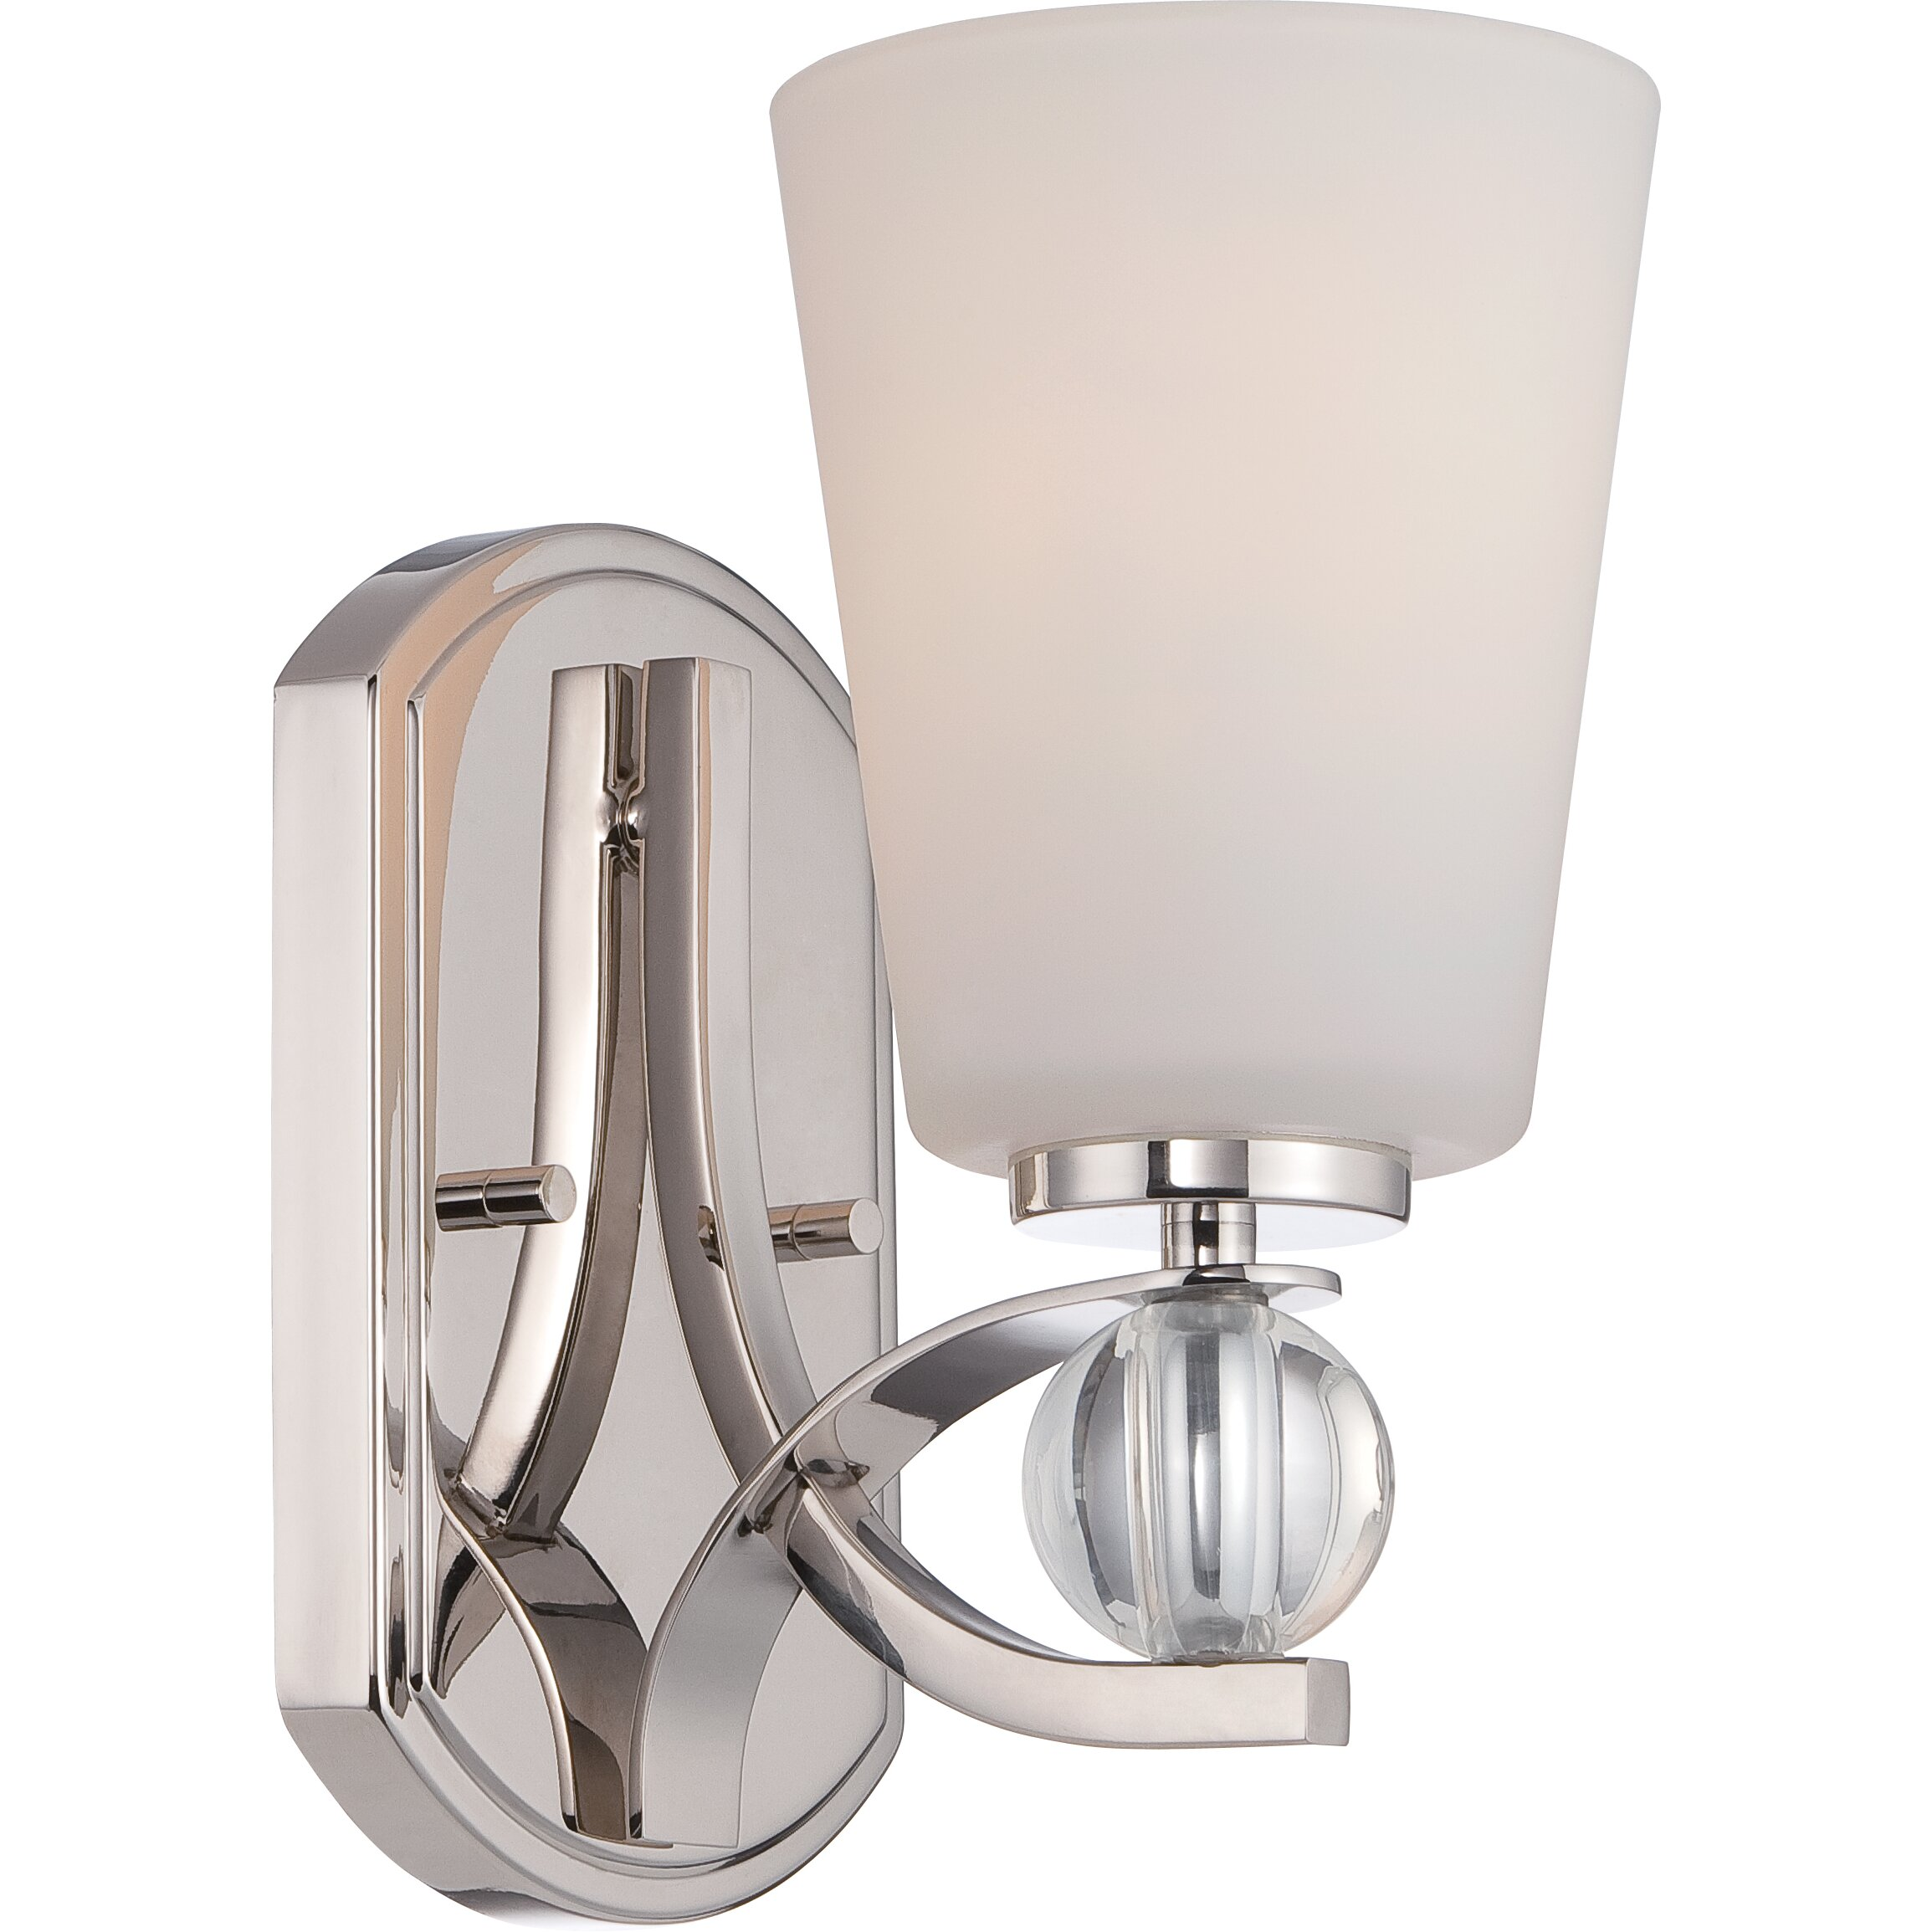 Nuvo Lighting Connie 1 Light Bath Sconce Reviews Wayfair